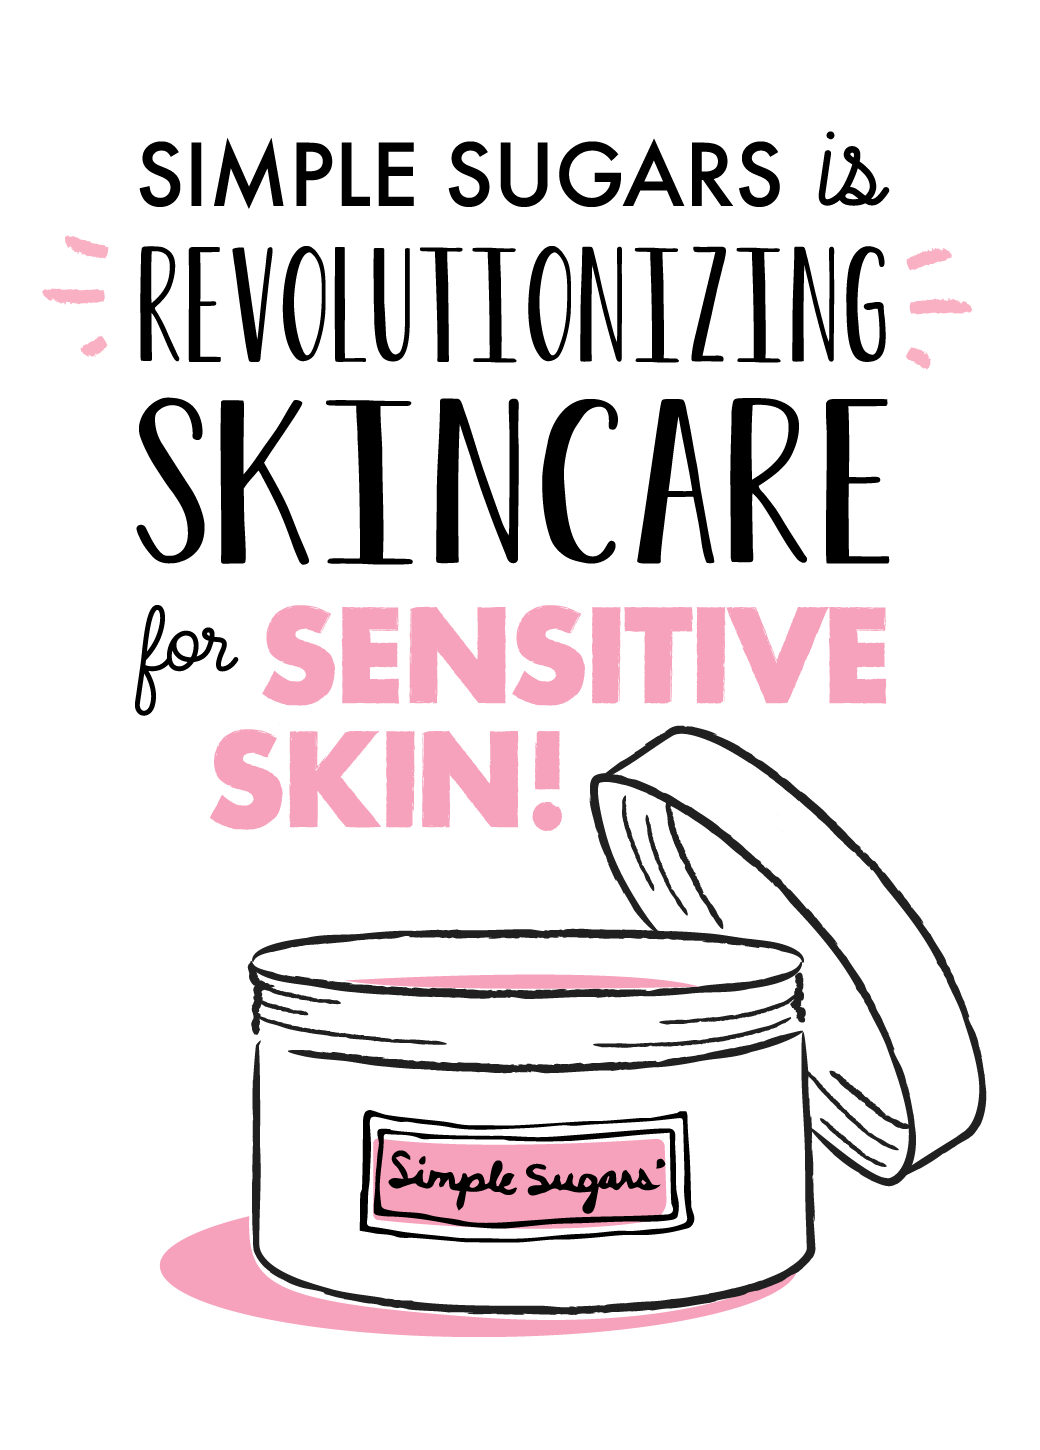 Simple Sugars is Revolutionizing Skincare for Sensitive Skin